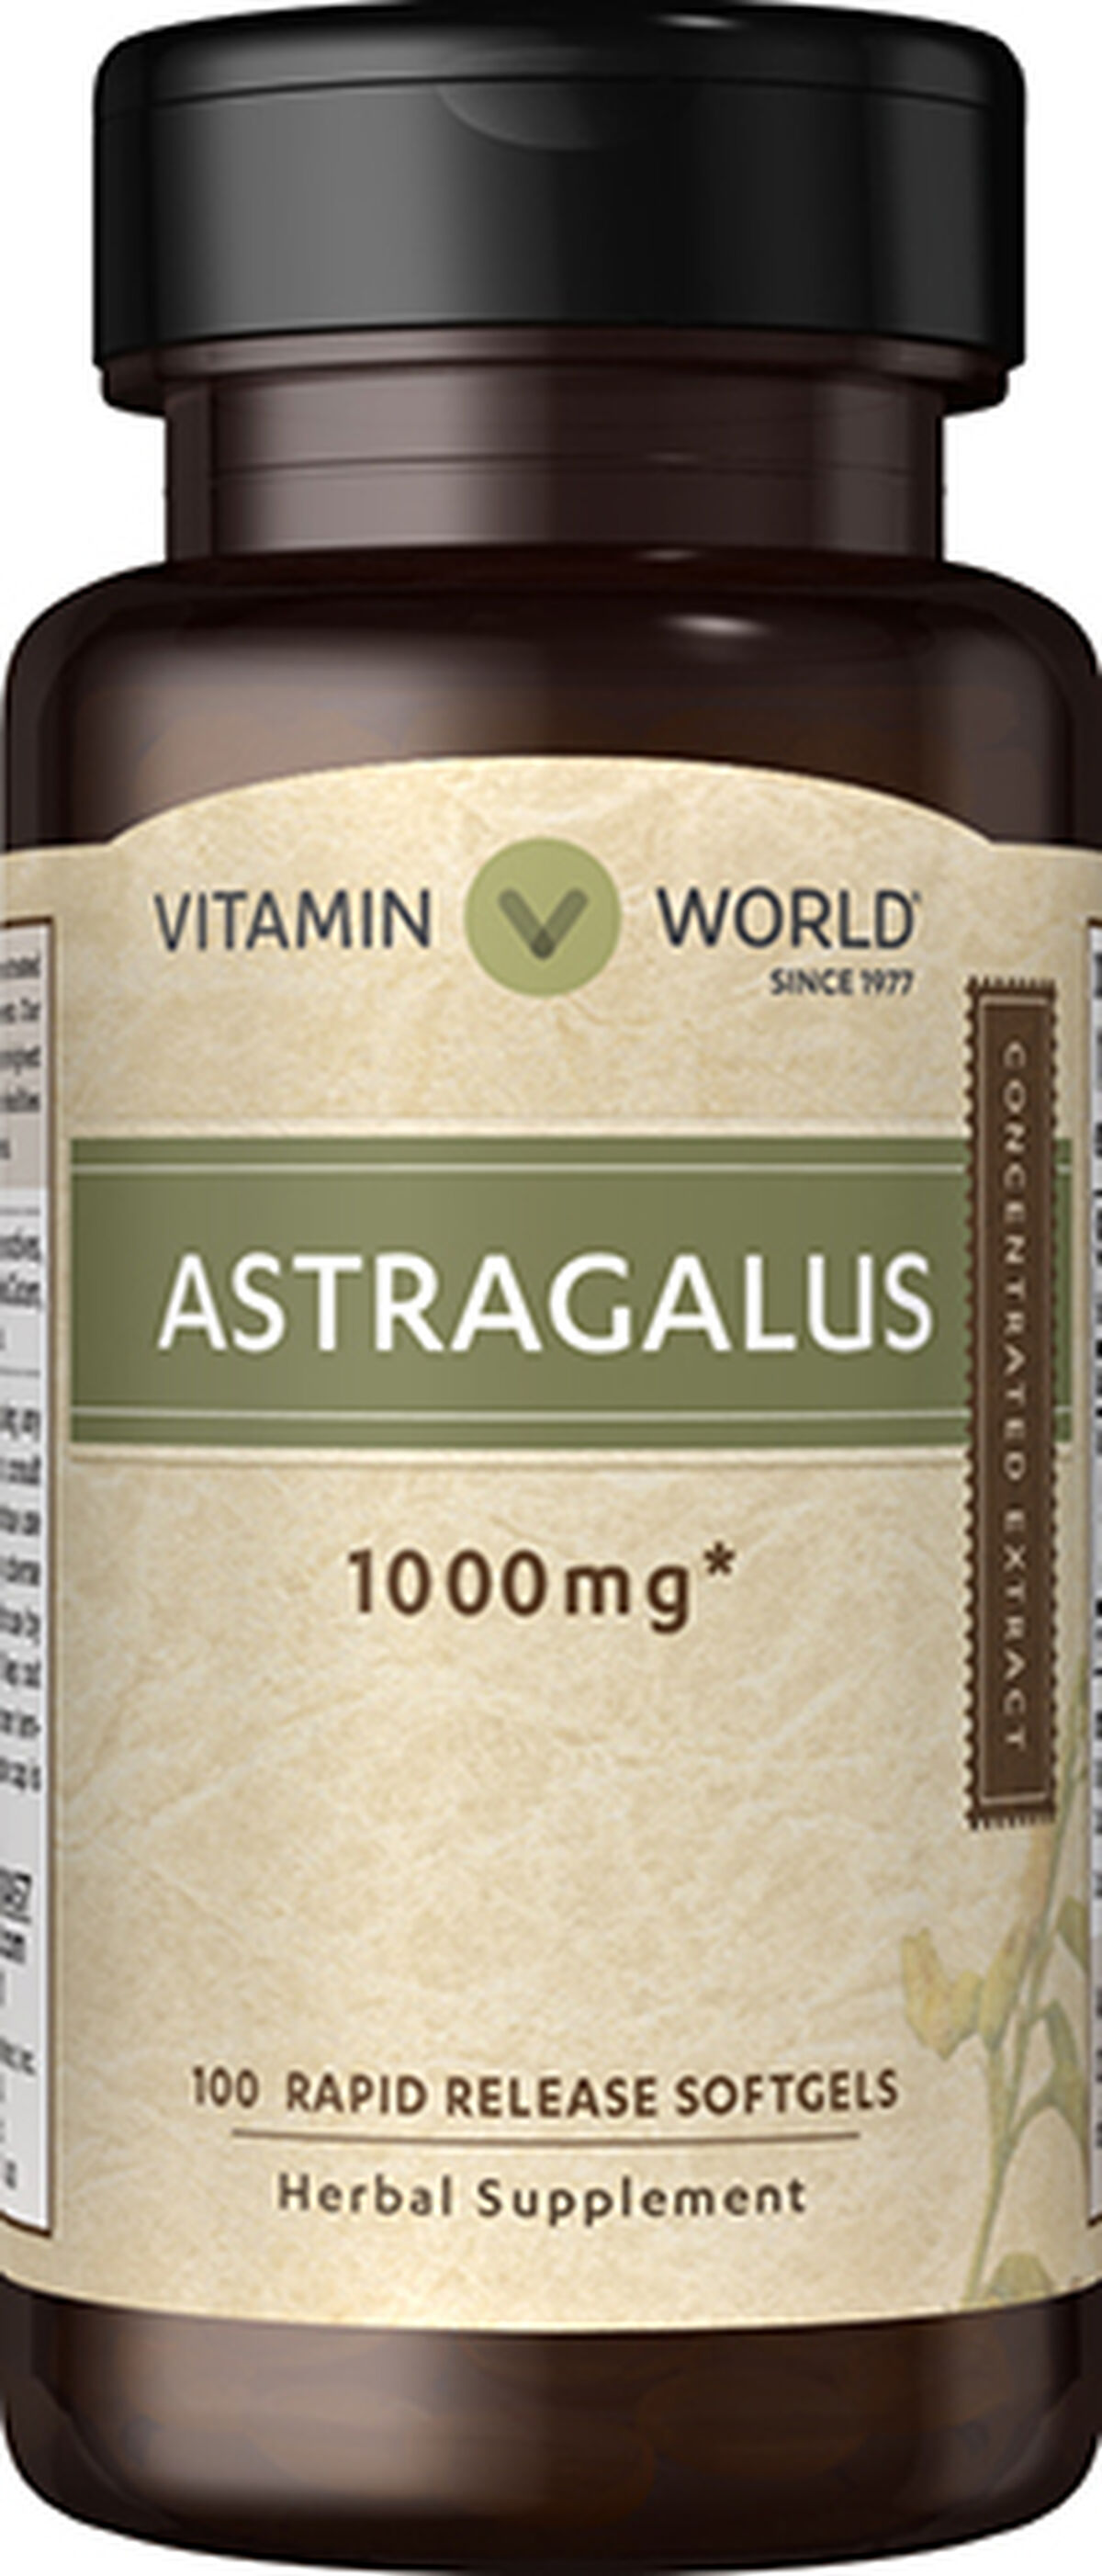 Astragalus 1000 mg at Vitamin World | Tuggl